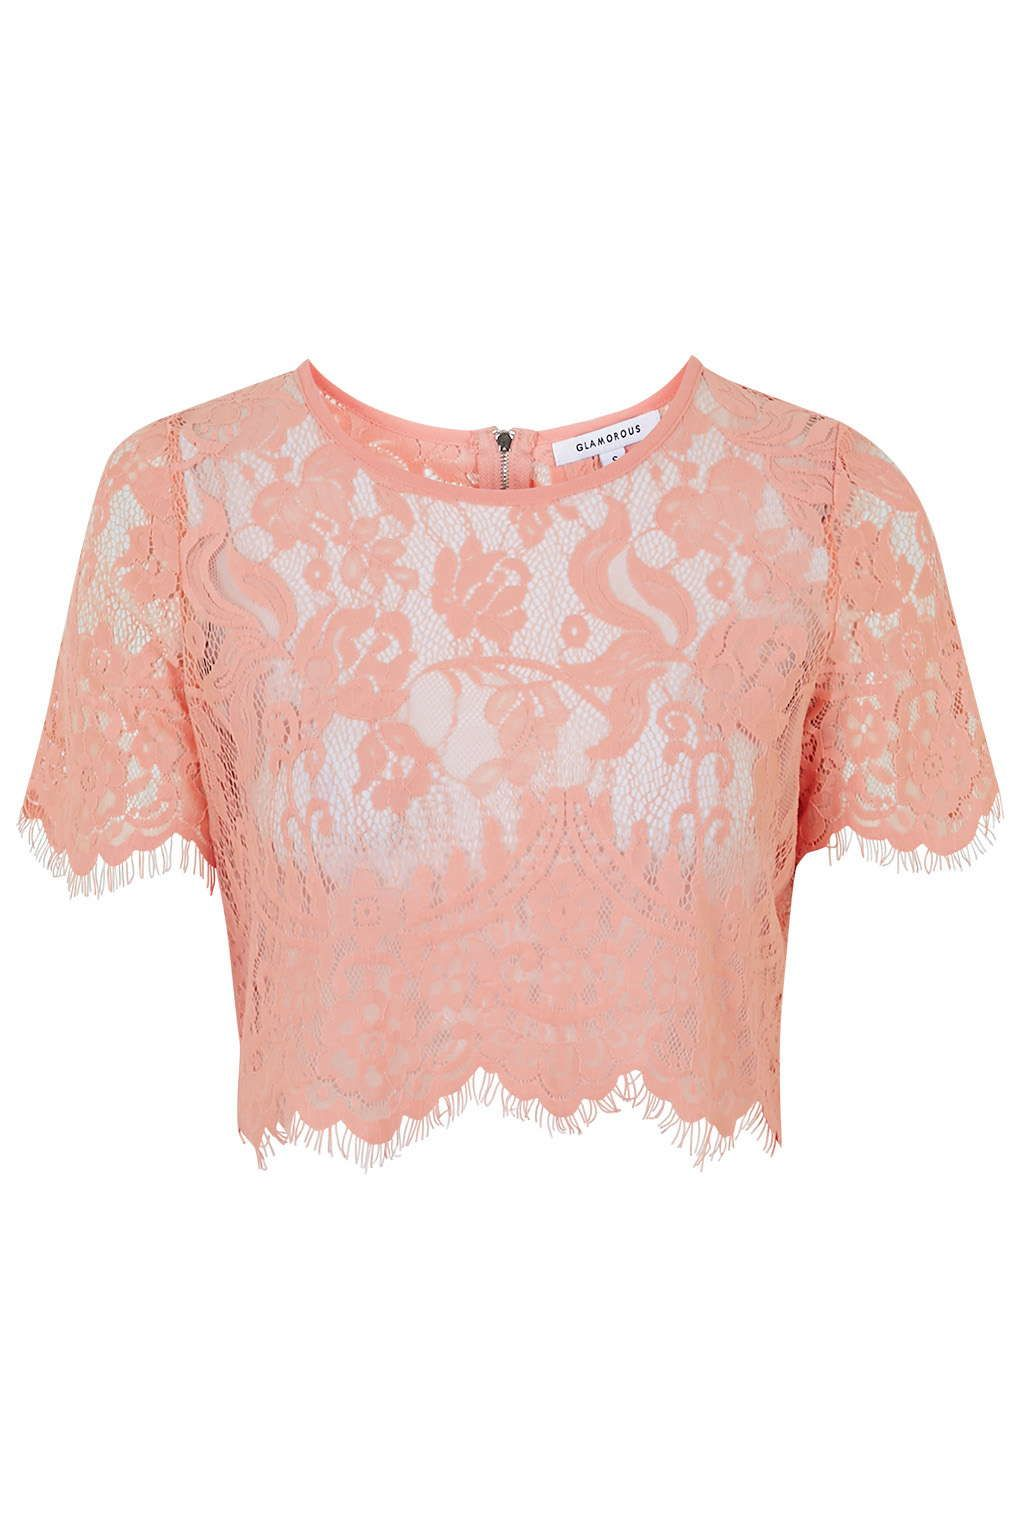 1dcd6cdc2e2 Sheer Lace Crop Top by Glamorous | WISHLIST